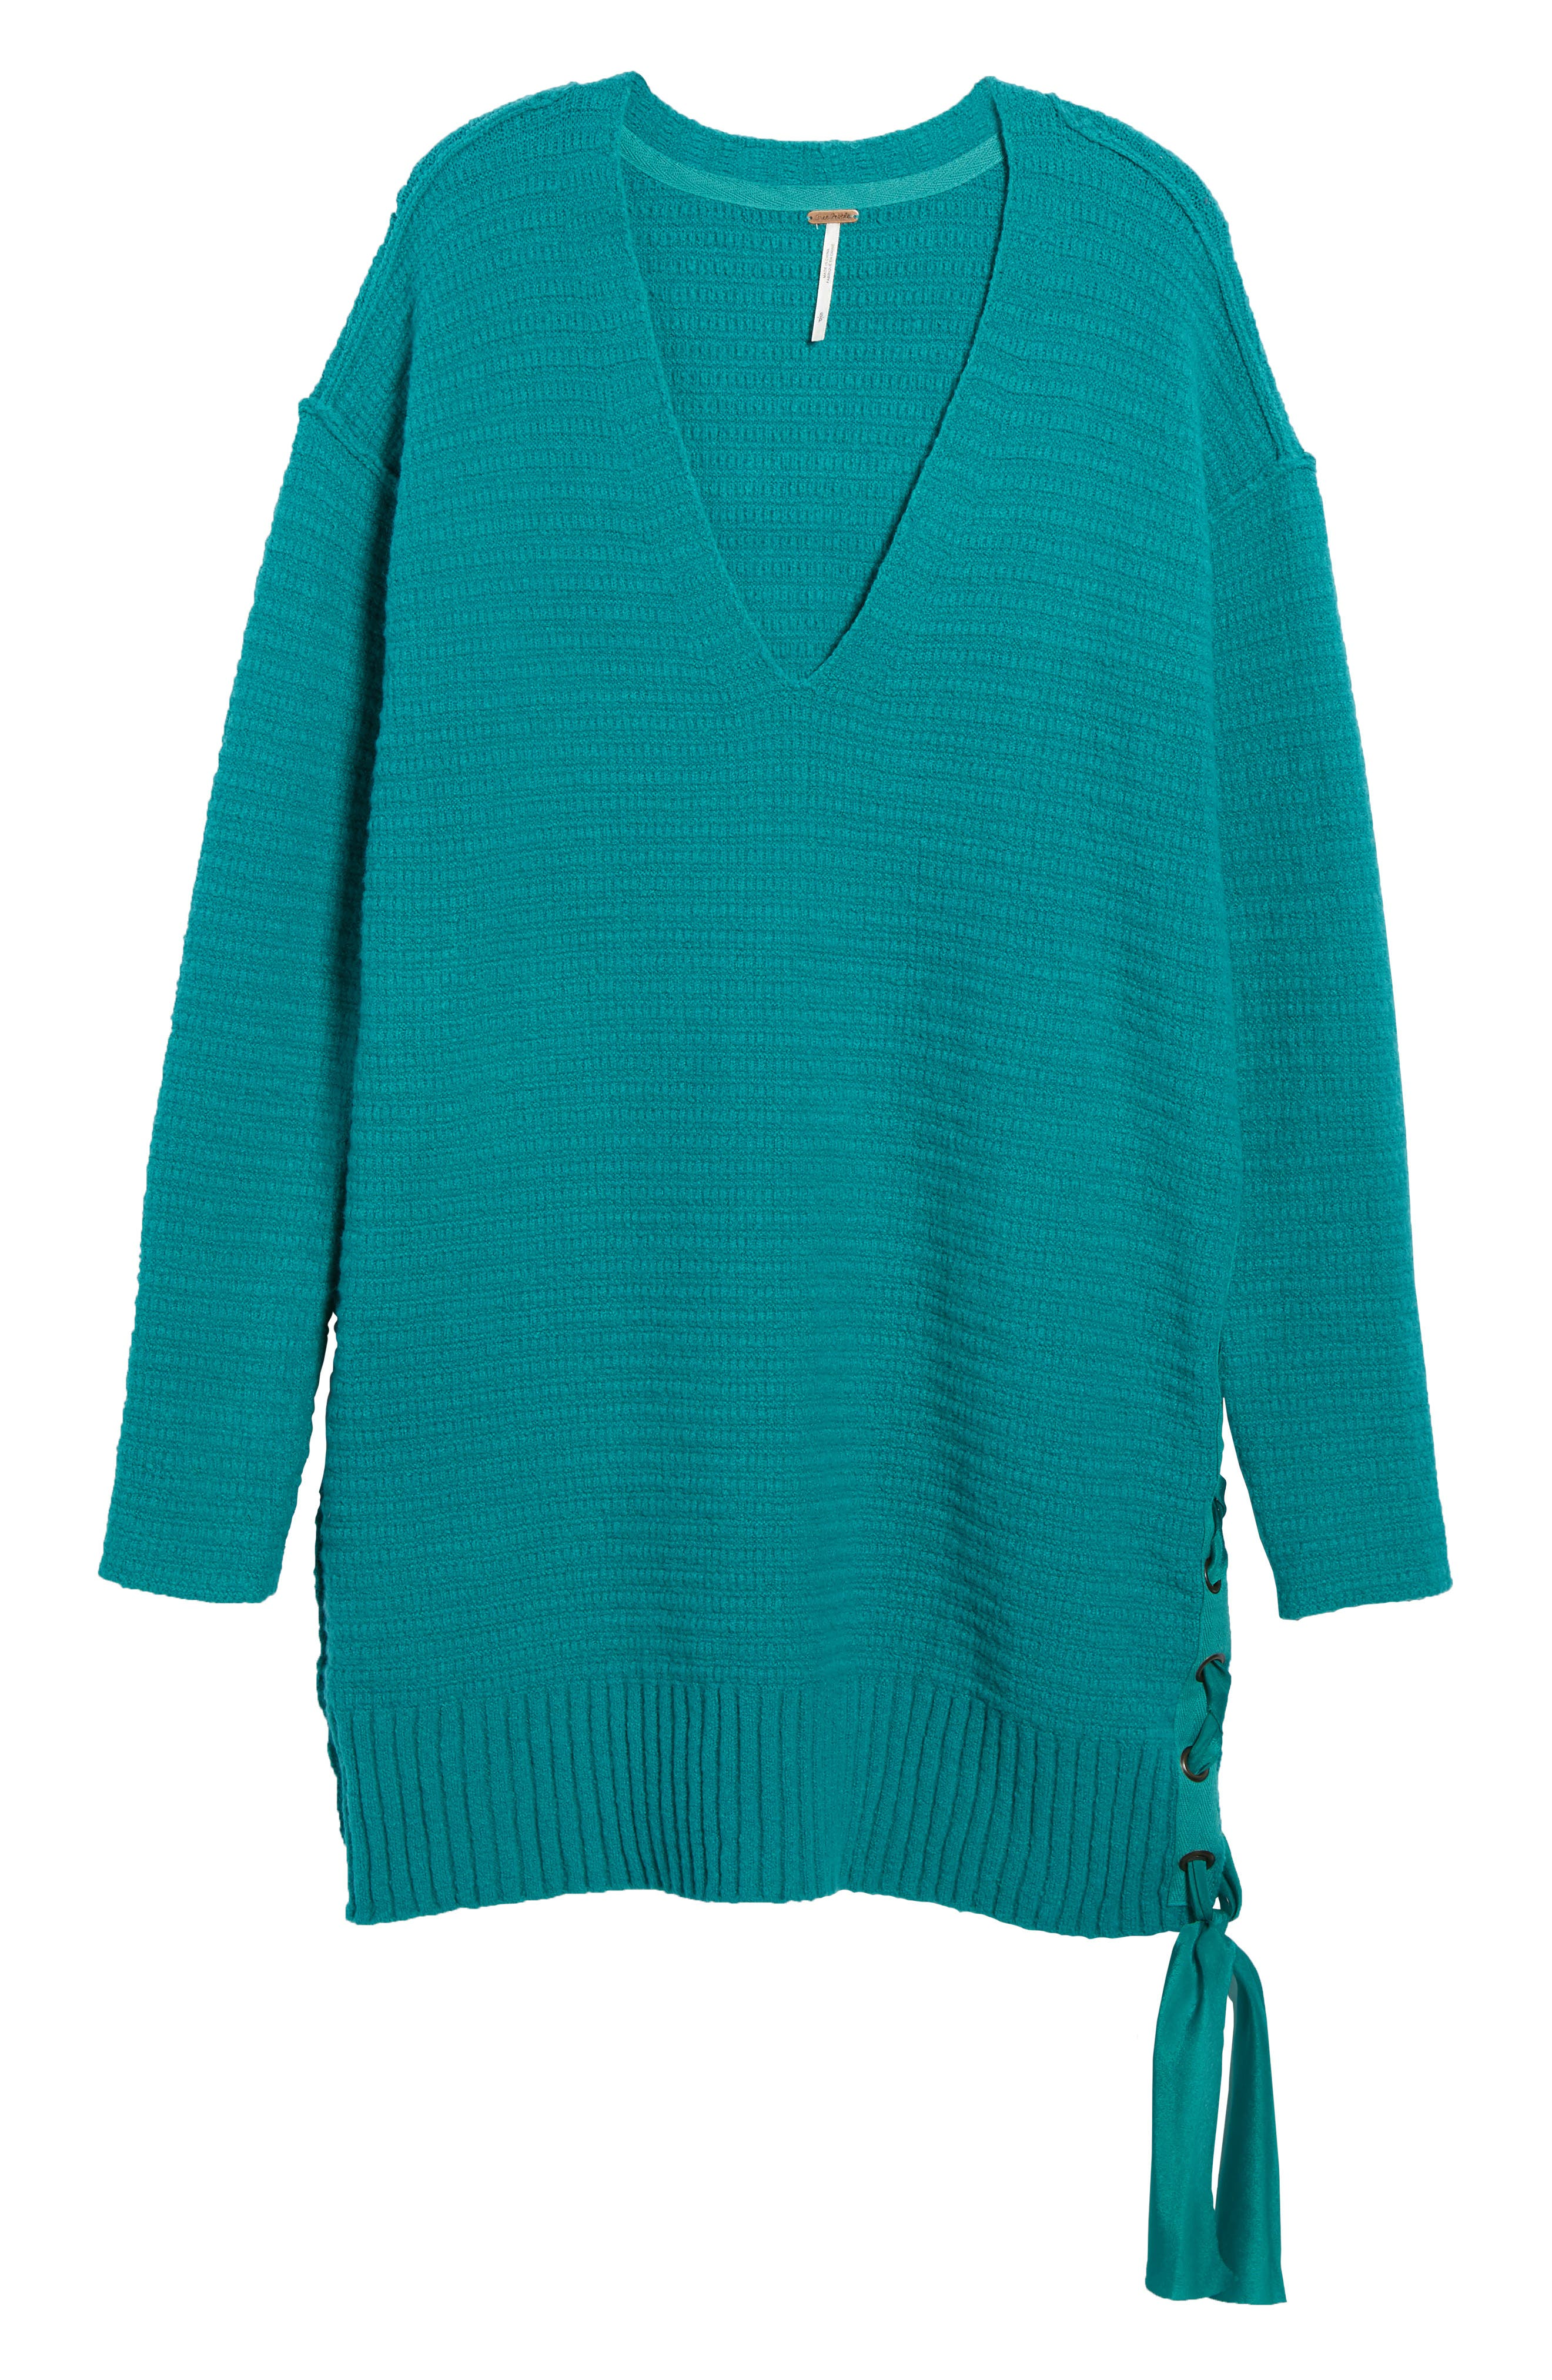 Heart It Laces Sweater,                             Alternate thumbnail 23, color,